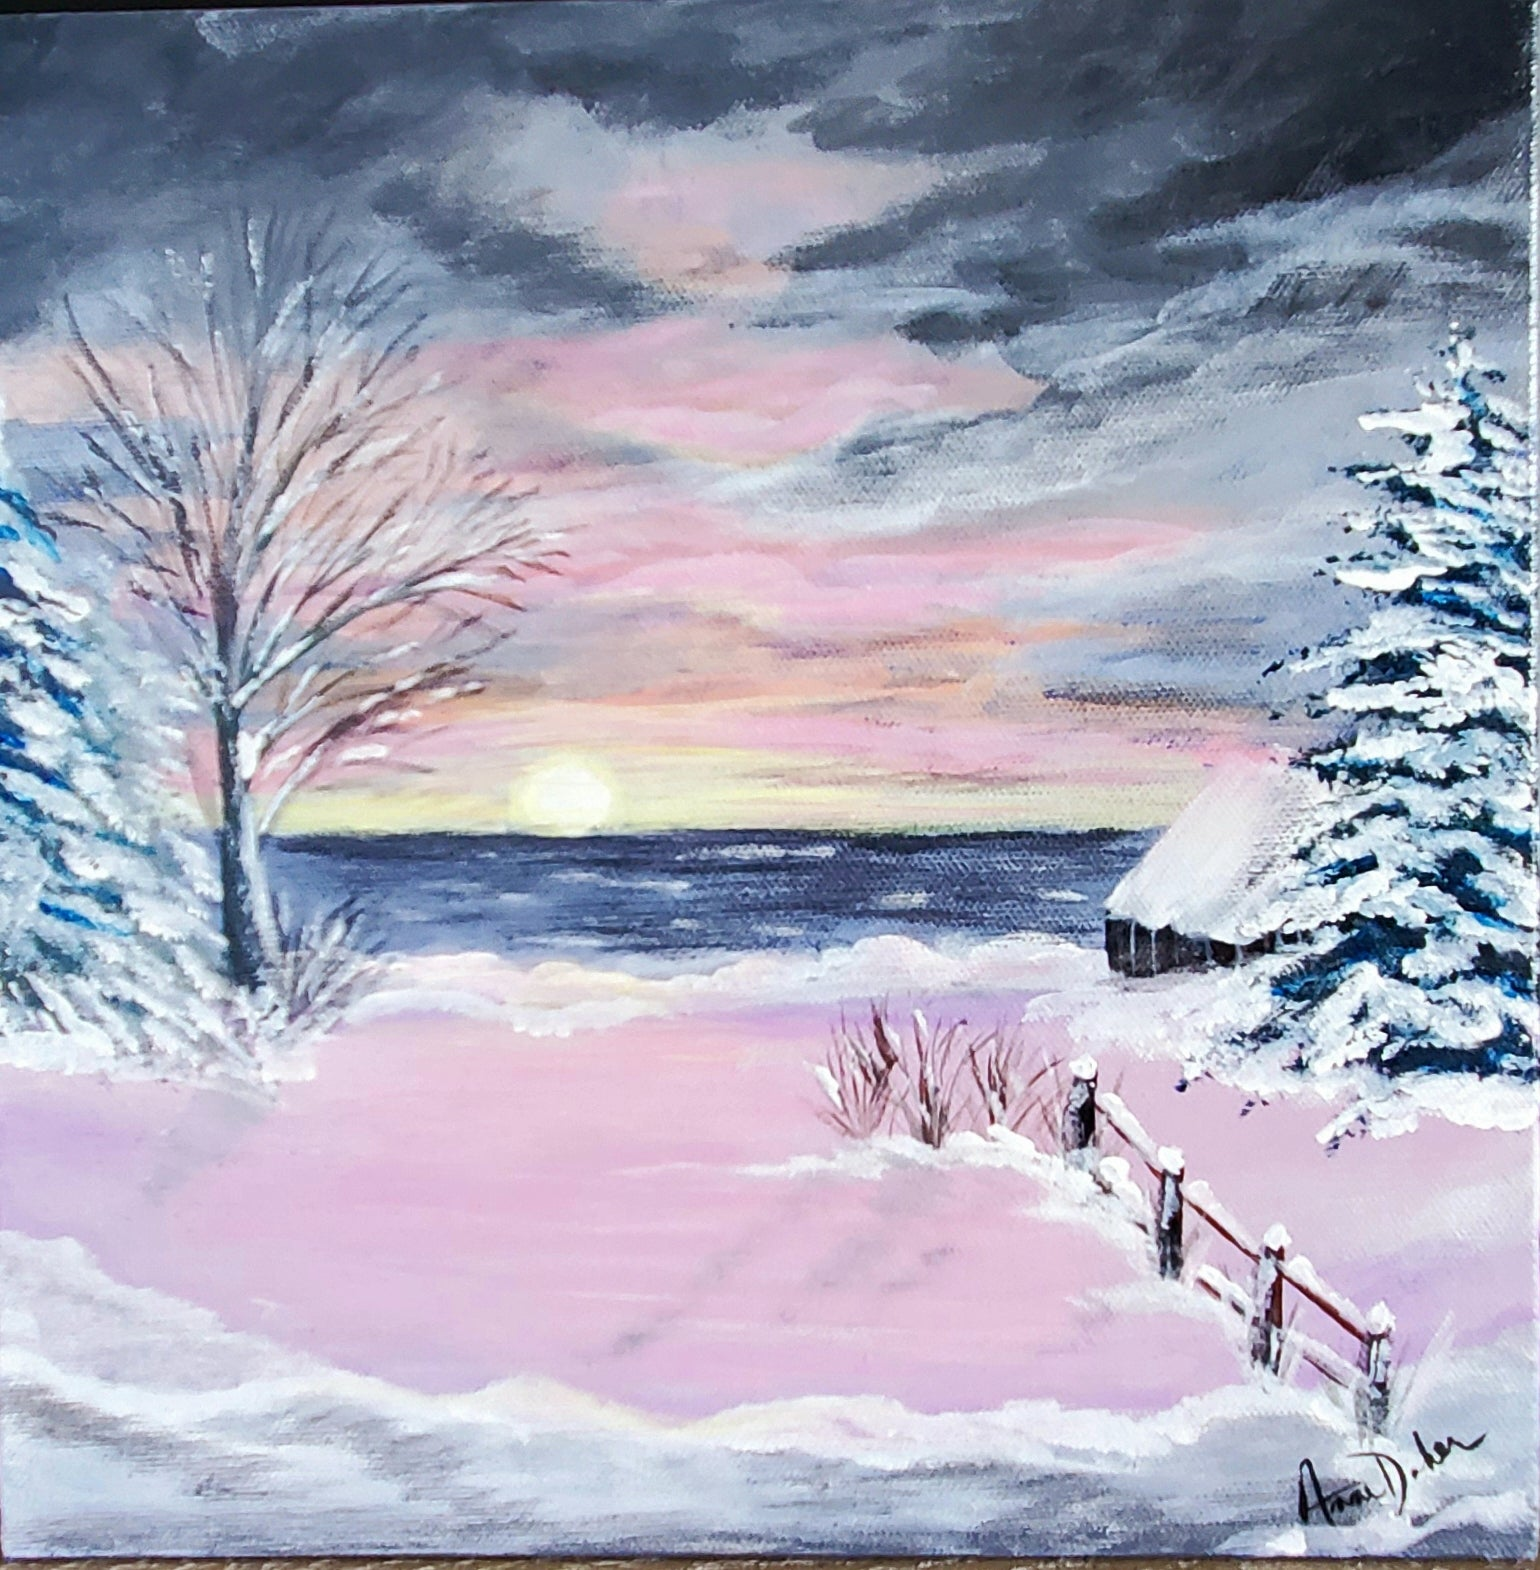 """Bright Kincardine Sunset"" Sold!"